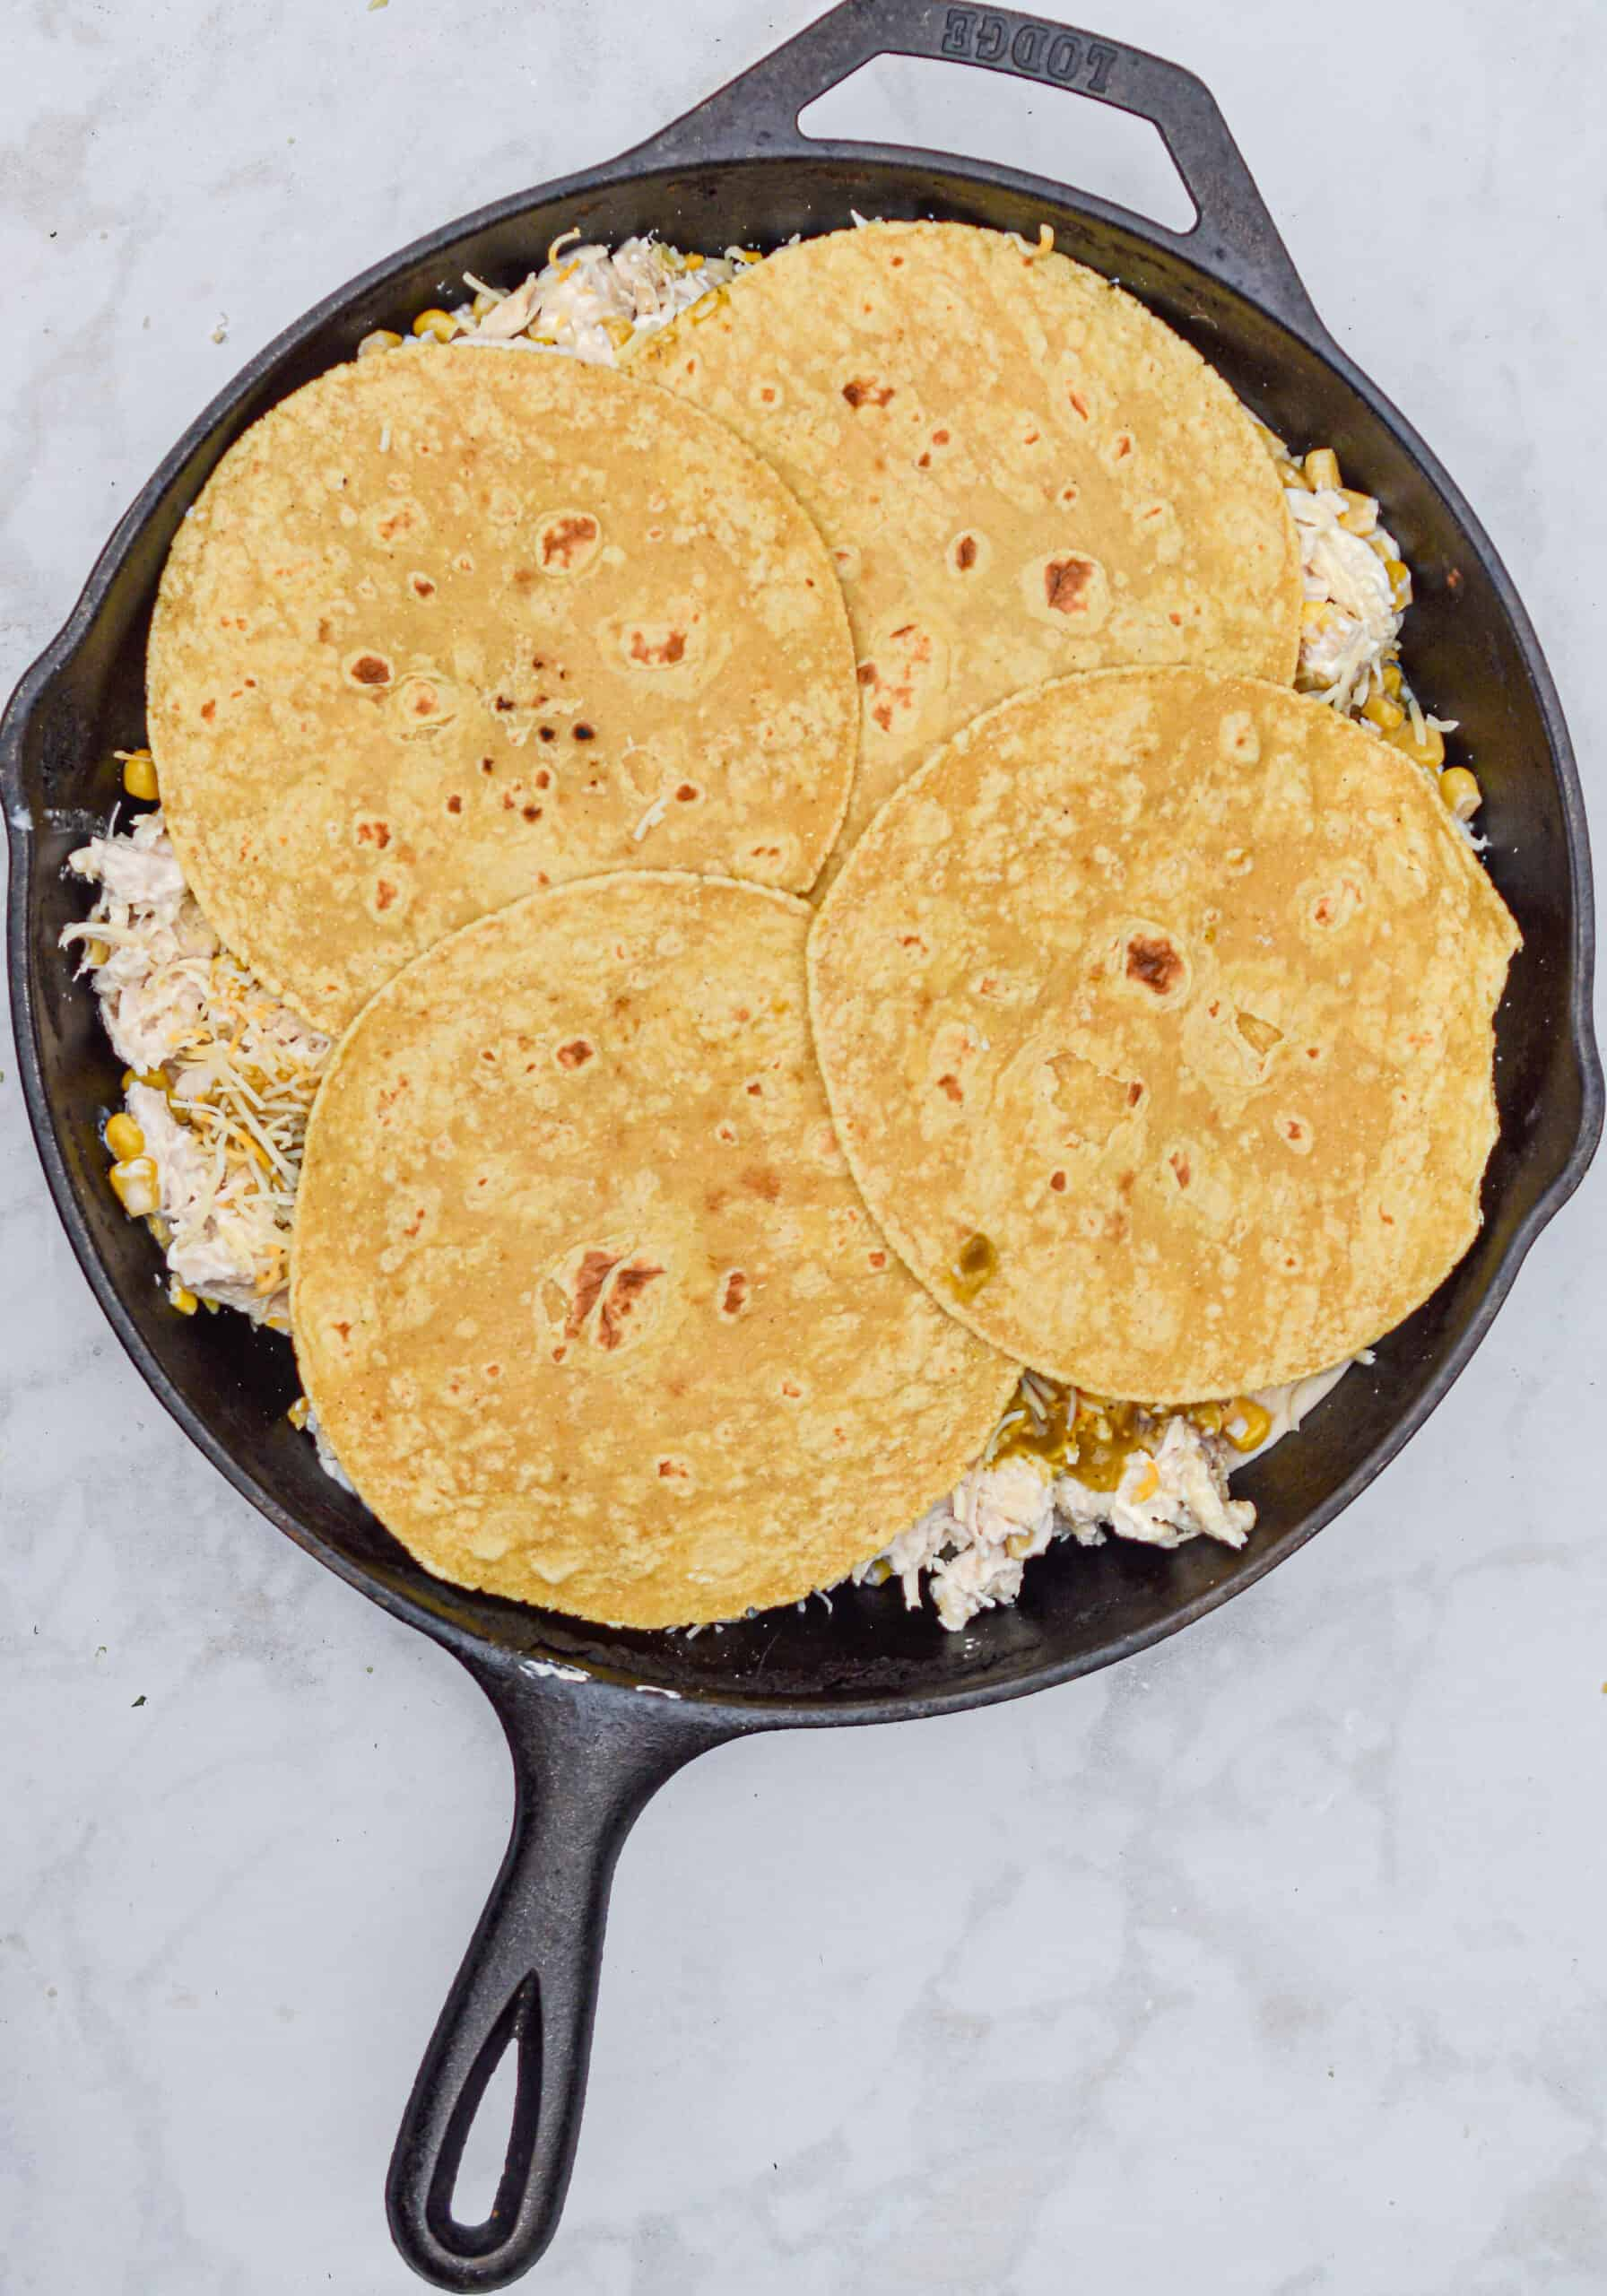 Top with the final layer of corn tortillas